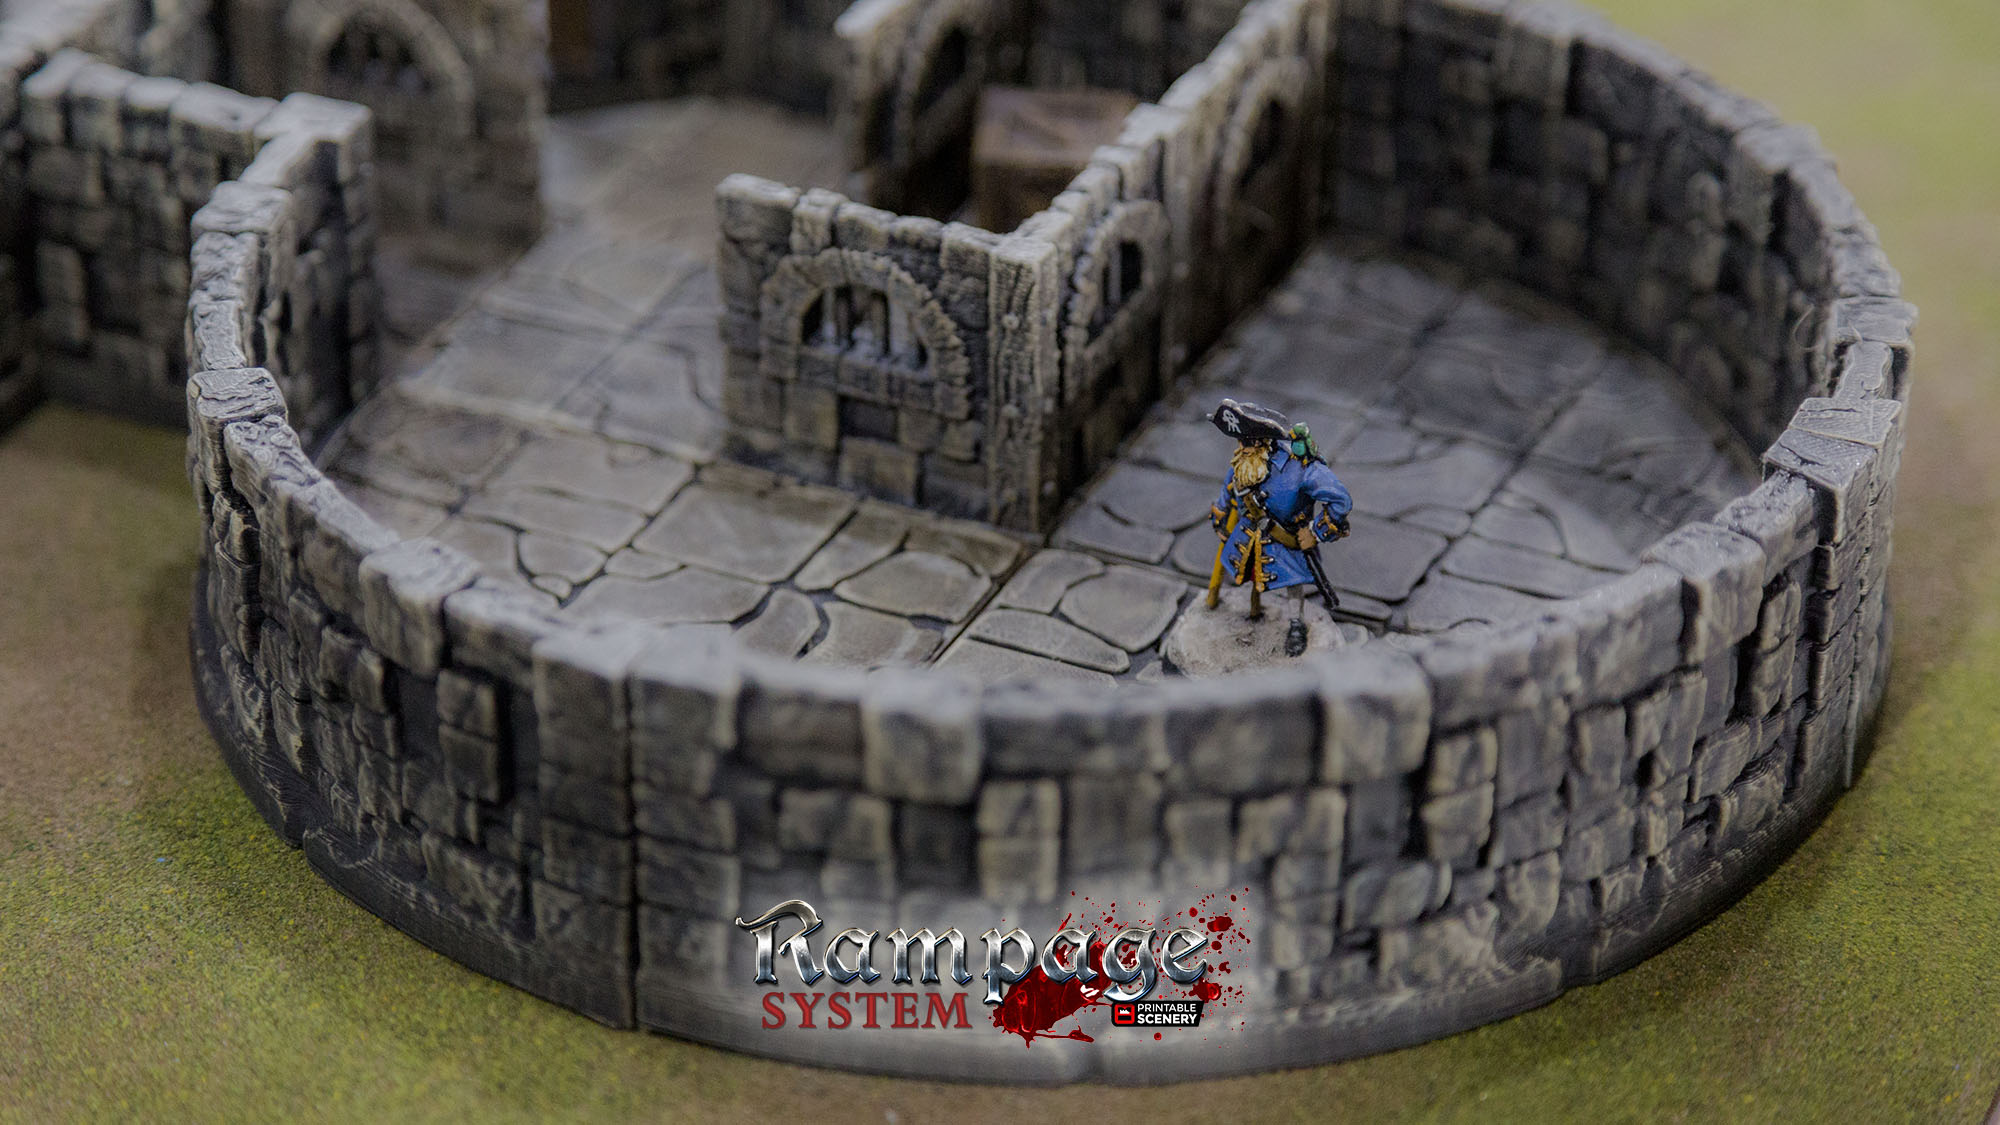 graphic about 3d Printable Dungeon Tiles named 3d-printable-dungeon-tiles - Printable Surroundings